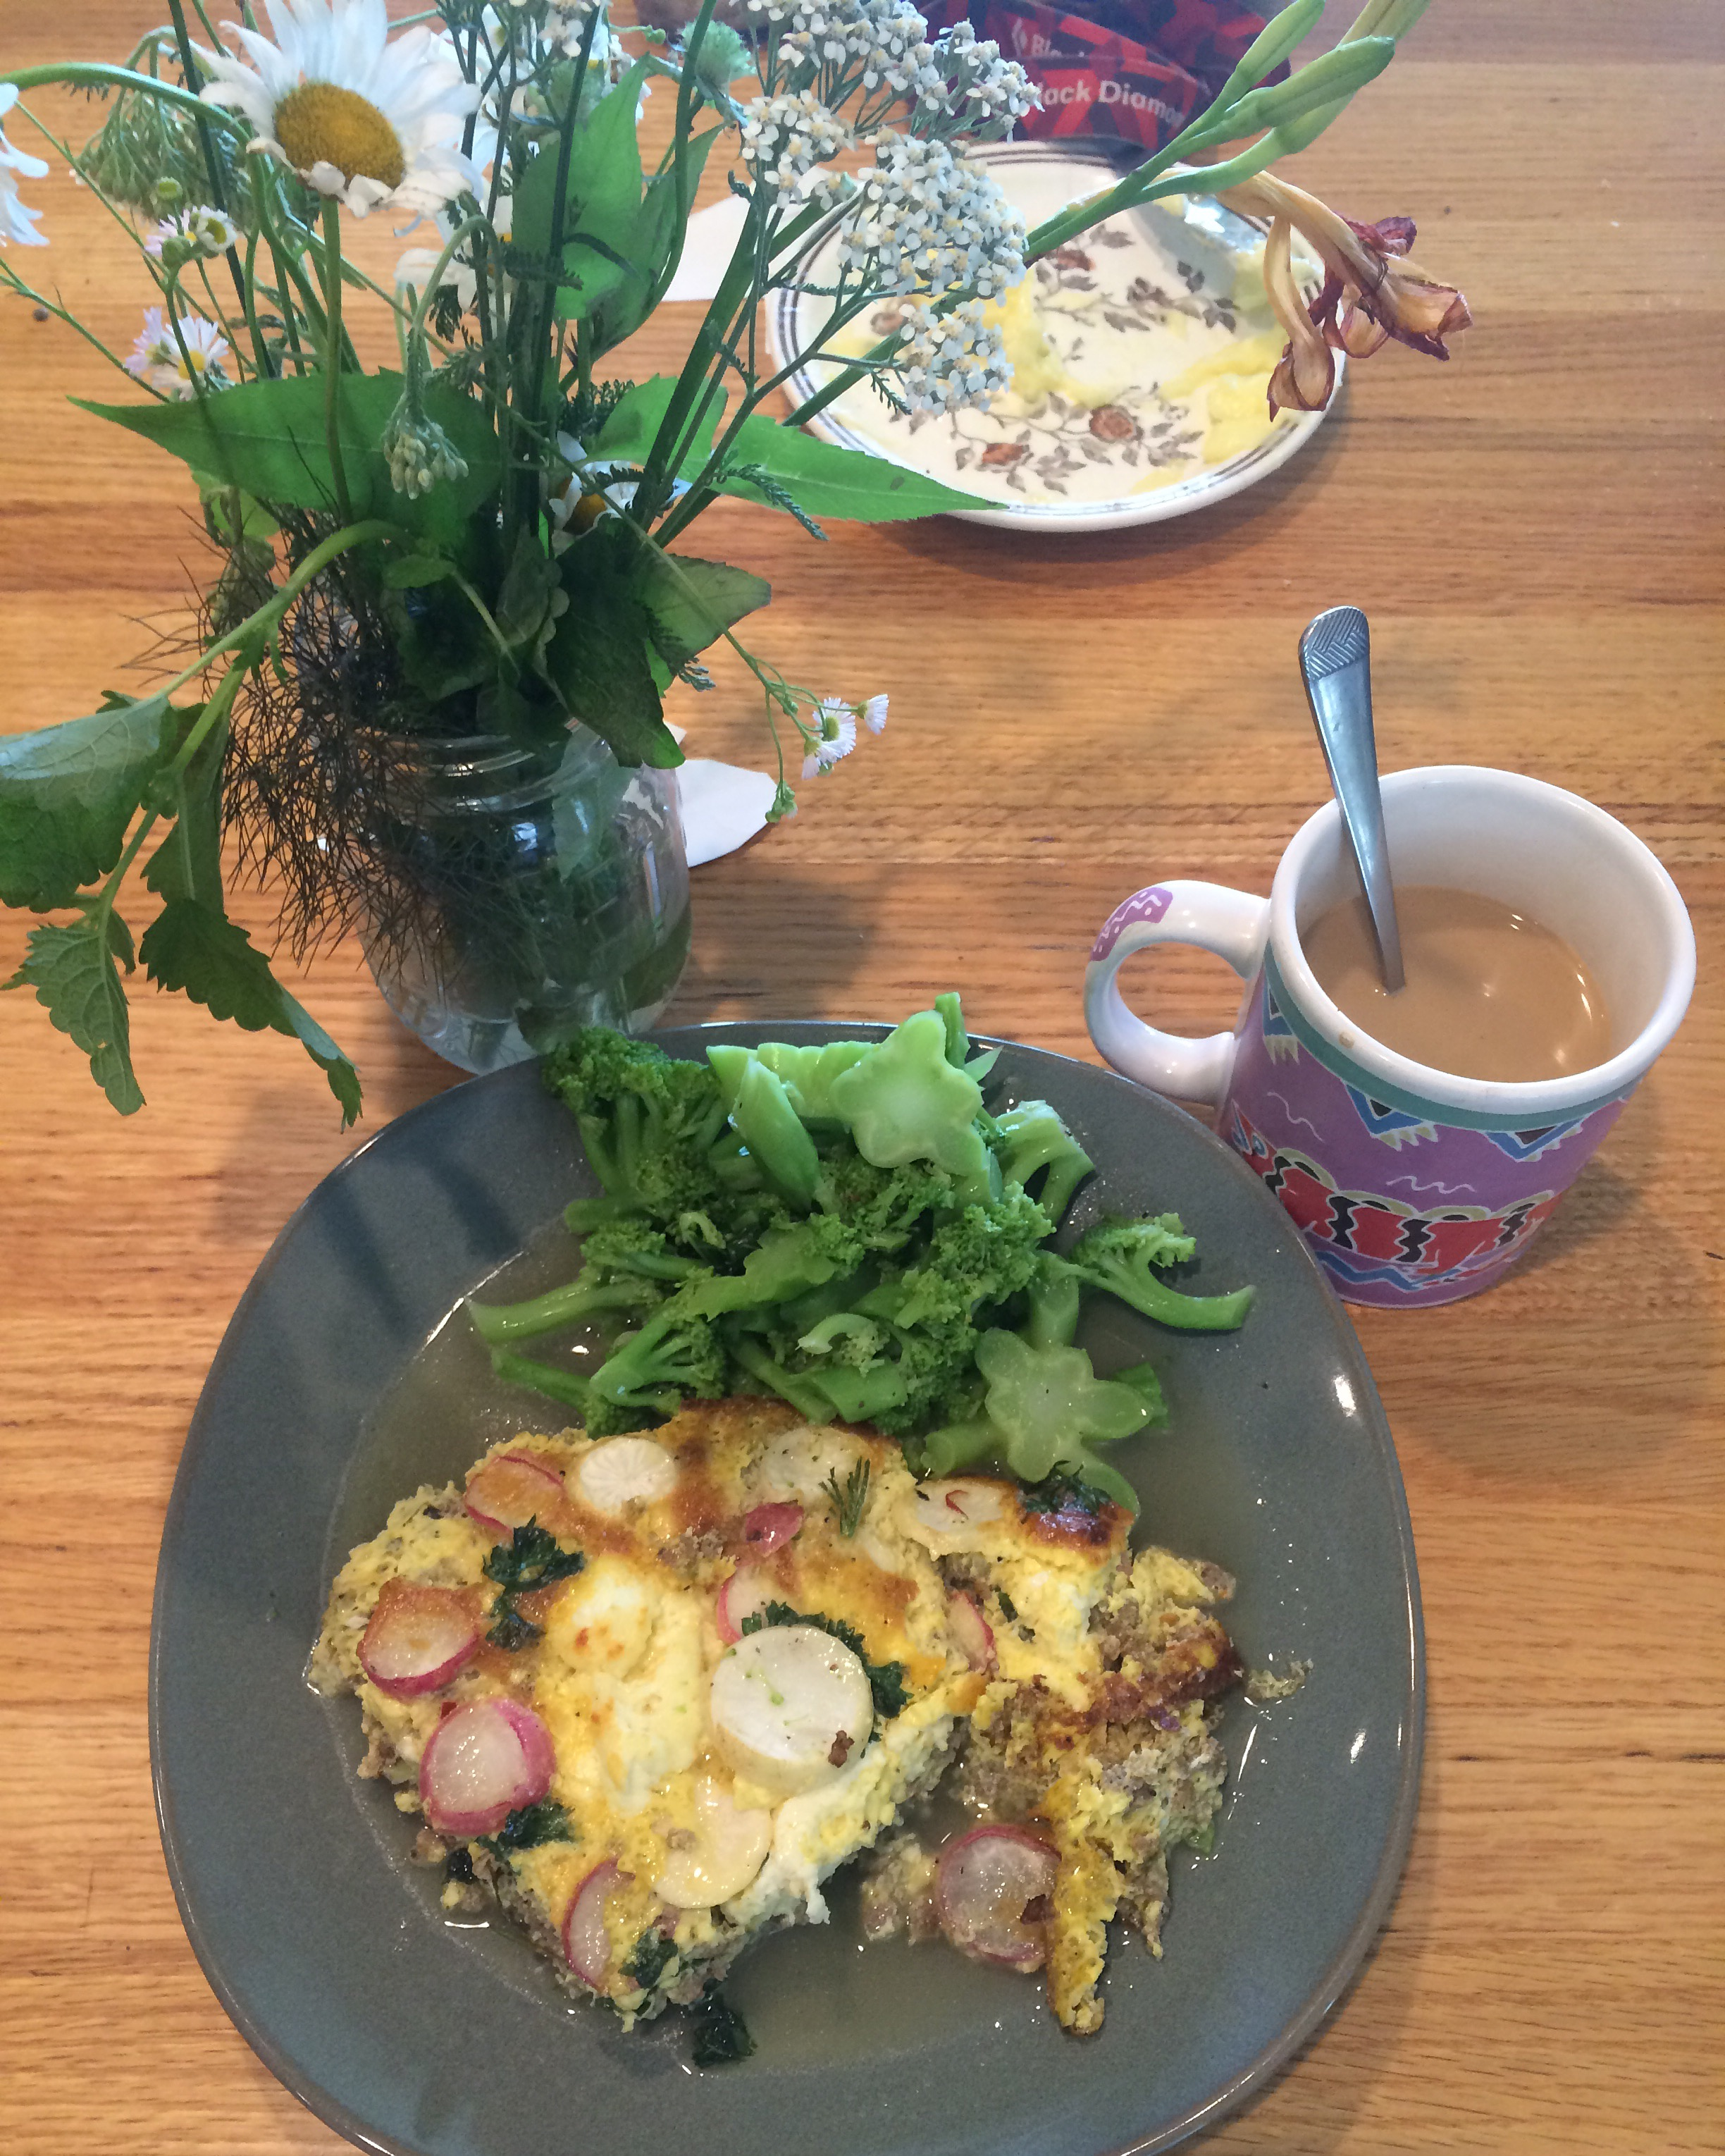 The non-vegetarian frittata I made with pork sausage, homemade cheese, garlic scapes, radishes, turnips, and parsley with steamed broccoli and butter.